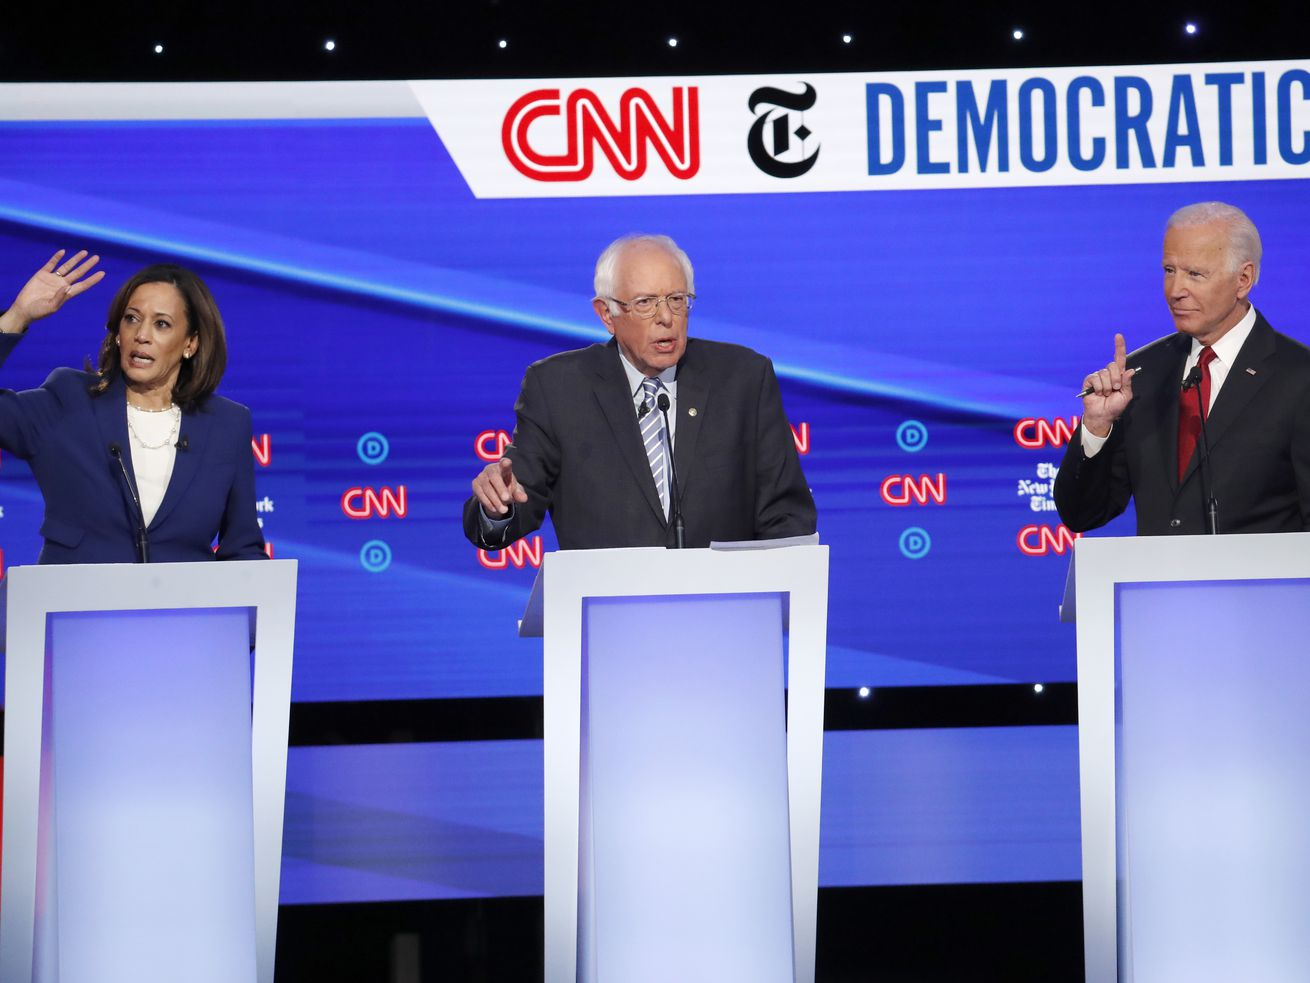 Democratic presidential candidates seem oblivious to how taxes, government spending affect private economy